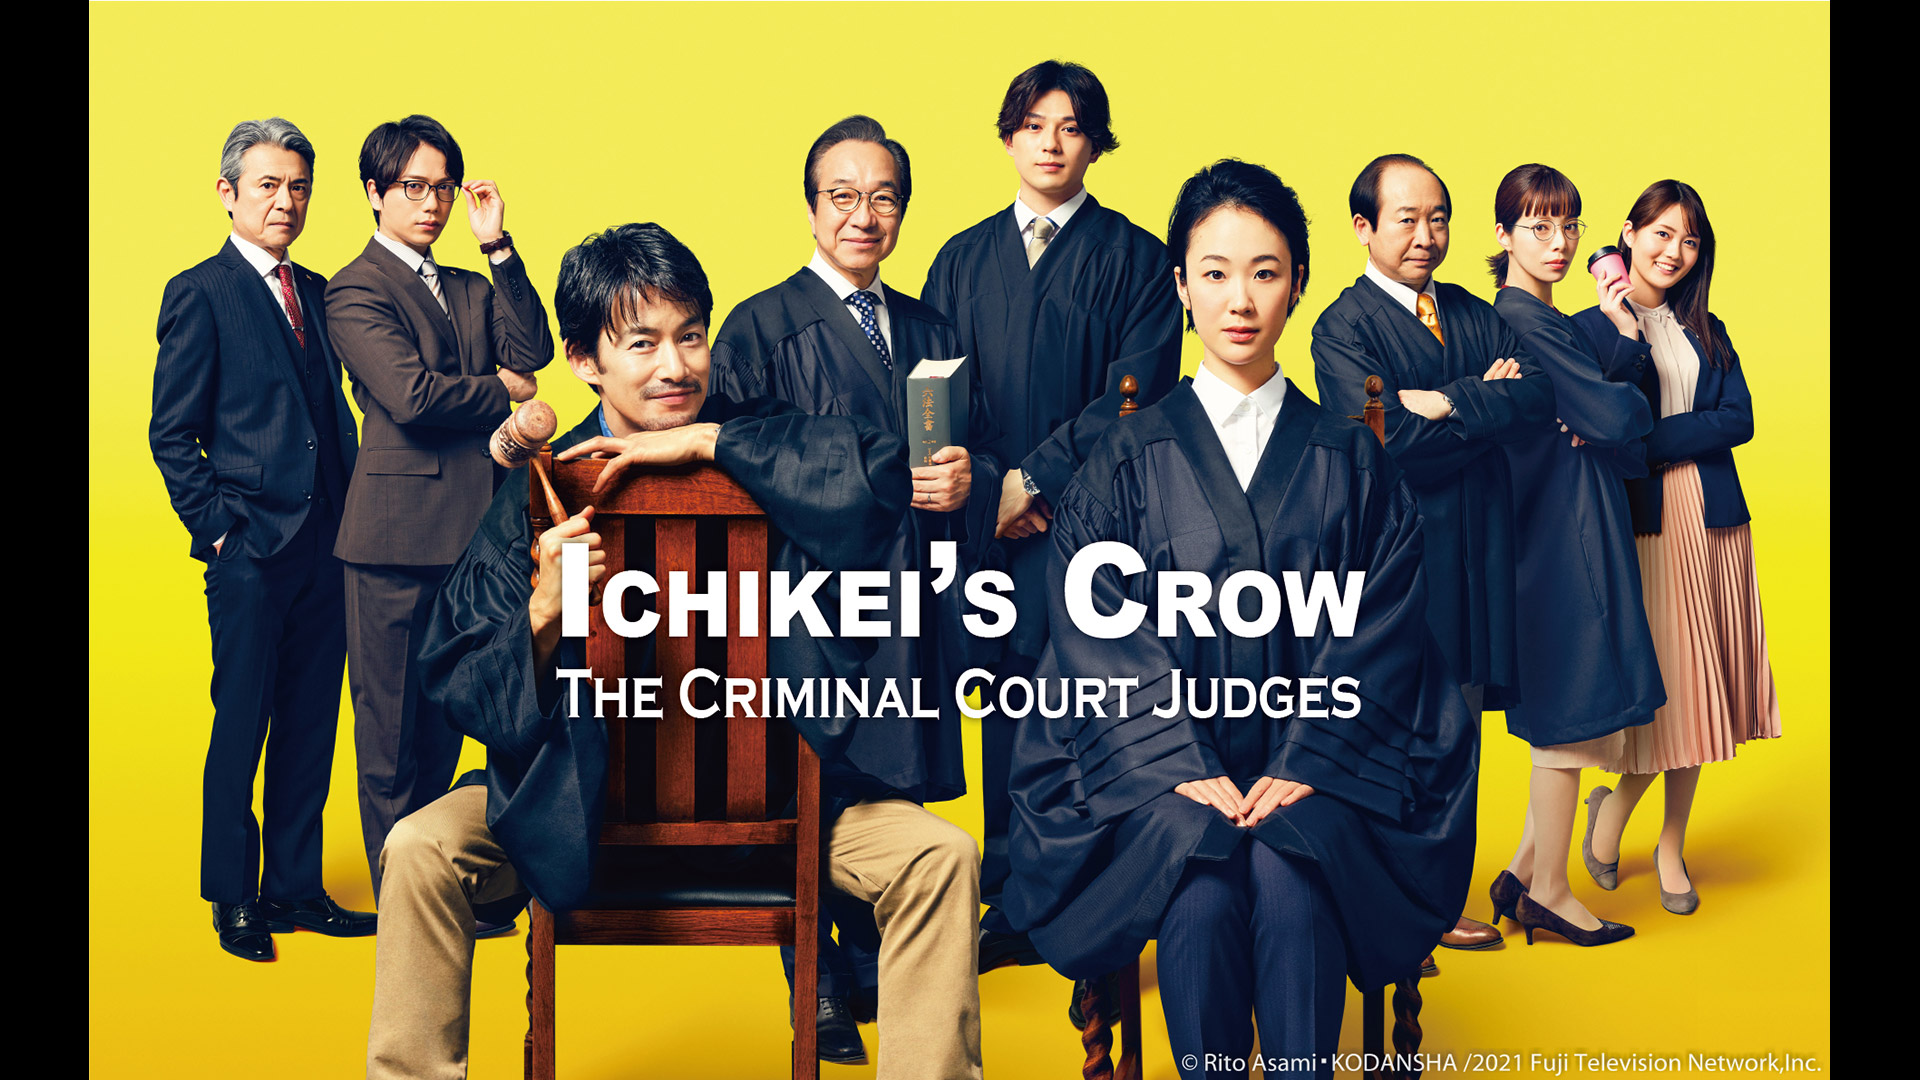 Ichikei's Crow – The Criminal Court Judges